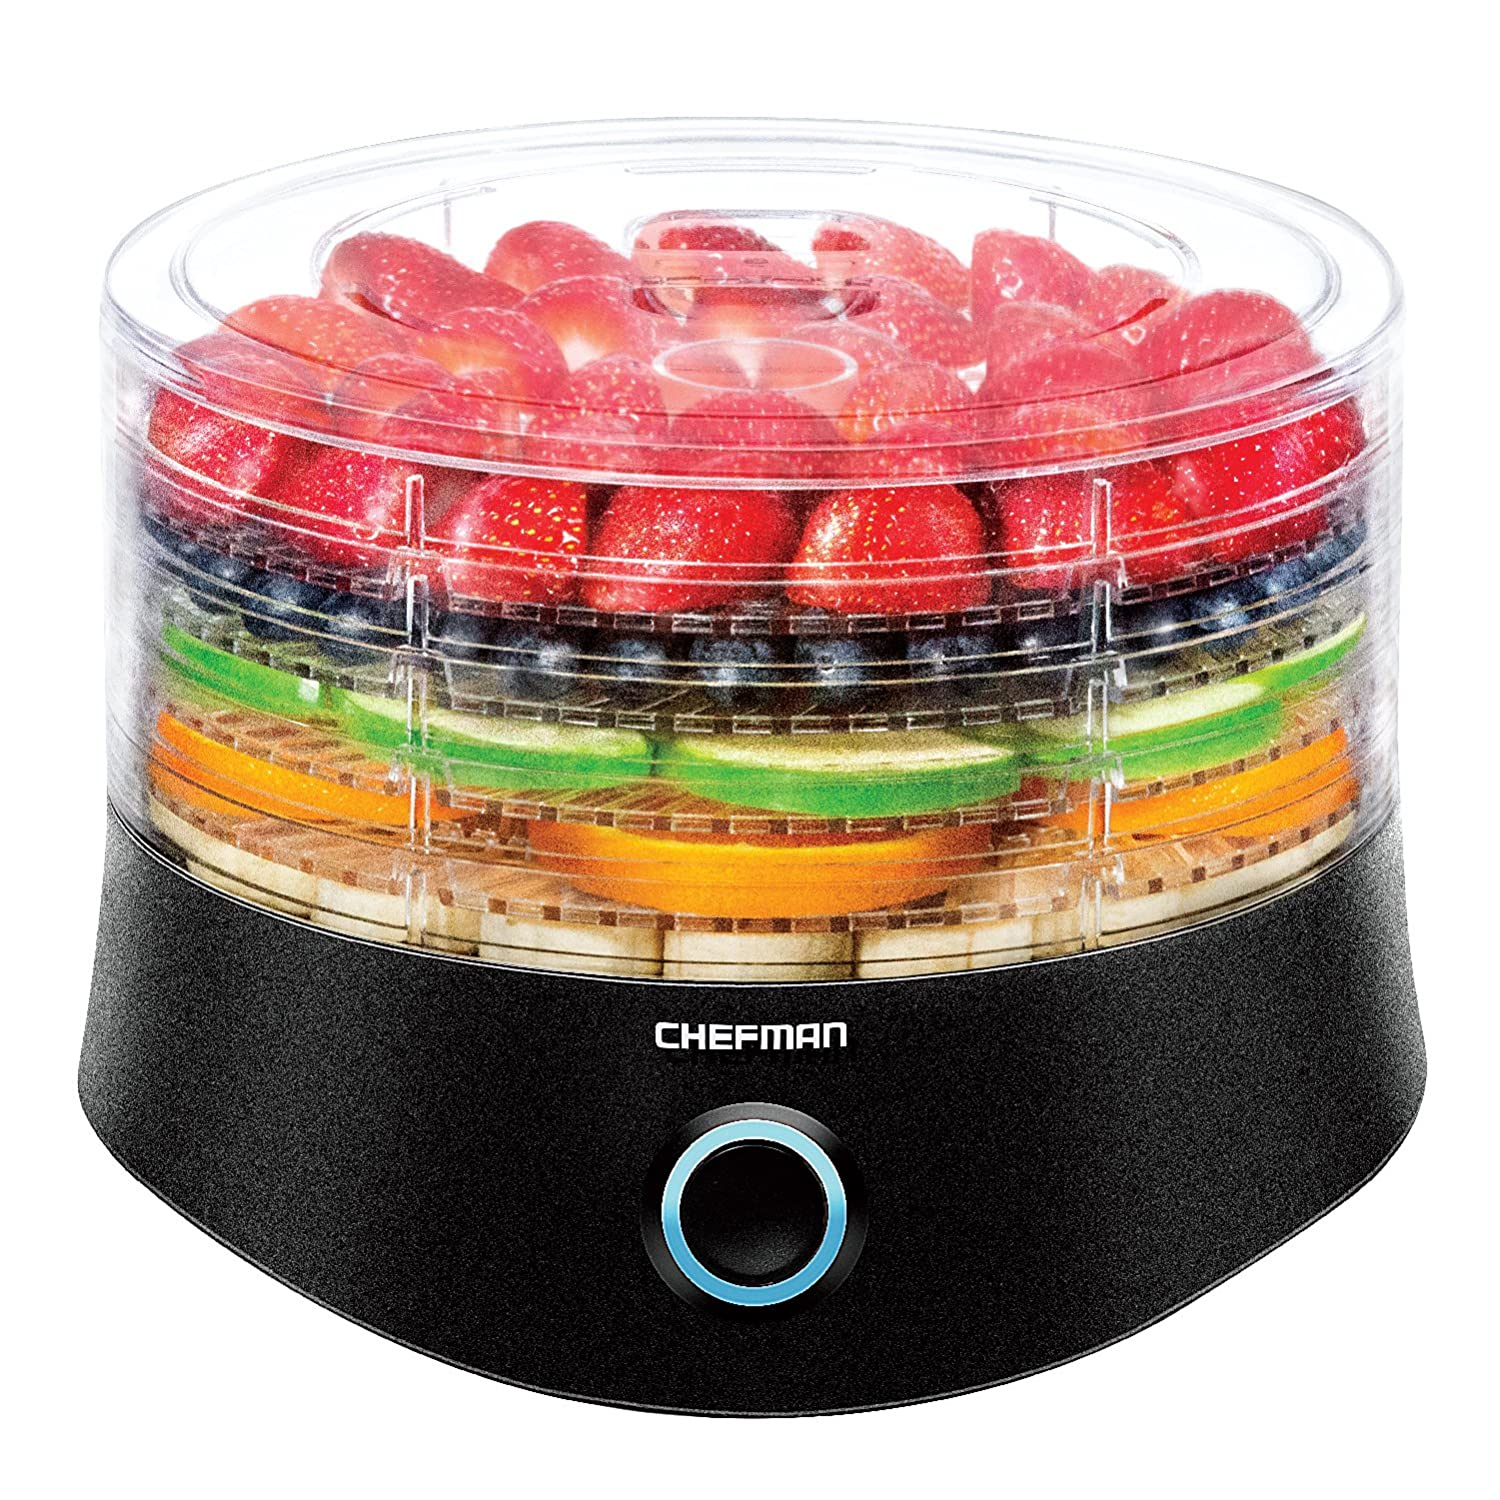 Chefman 5 Tray Round Food Dehydrator, BPA Free Professional Electric Multi-Tier Food Preserver, Meat or Beef Jerky Maker, Fruit, Herb, Vegetable Dryer, 9.5 Inch Diameter x 6.5 Inch Height